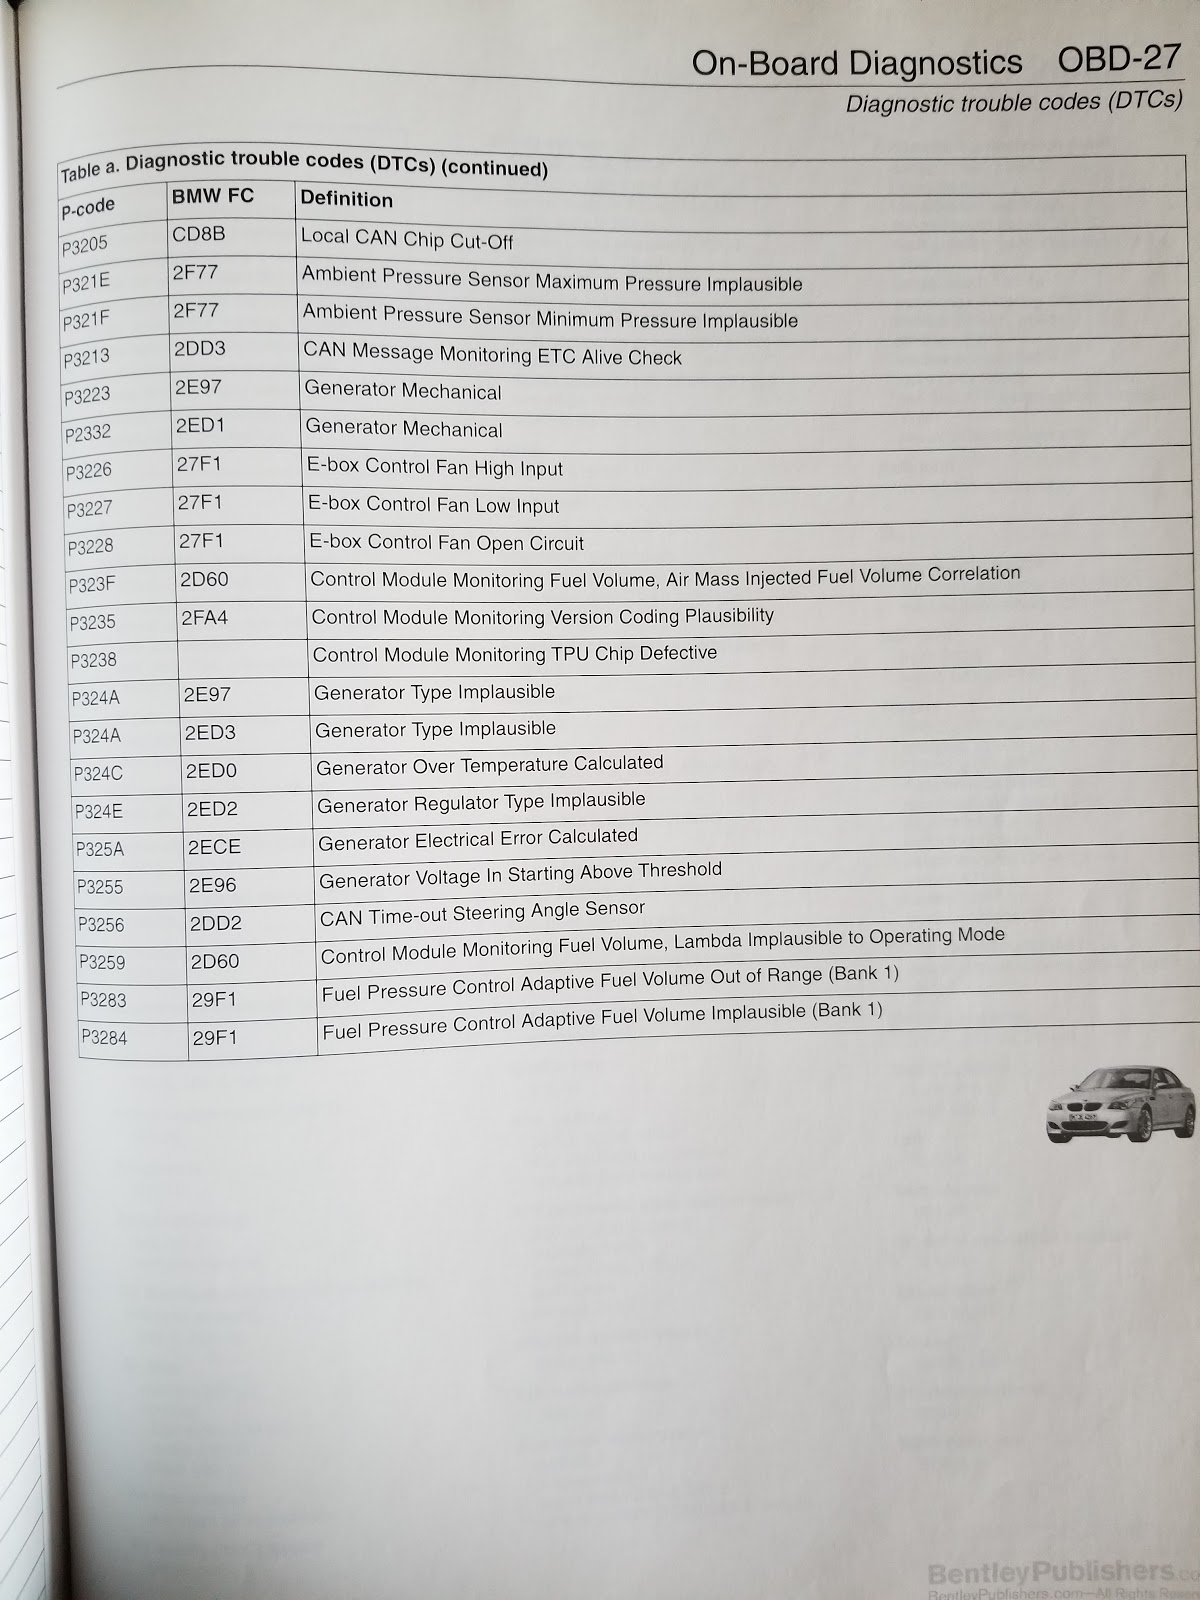 Welcome to my Blog, BMW stories and more : OBD Code Definitions (ALL